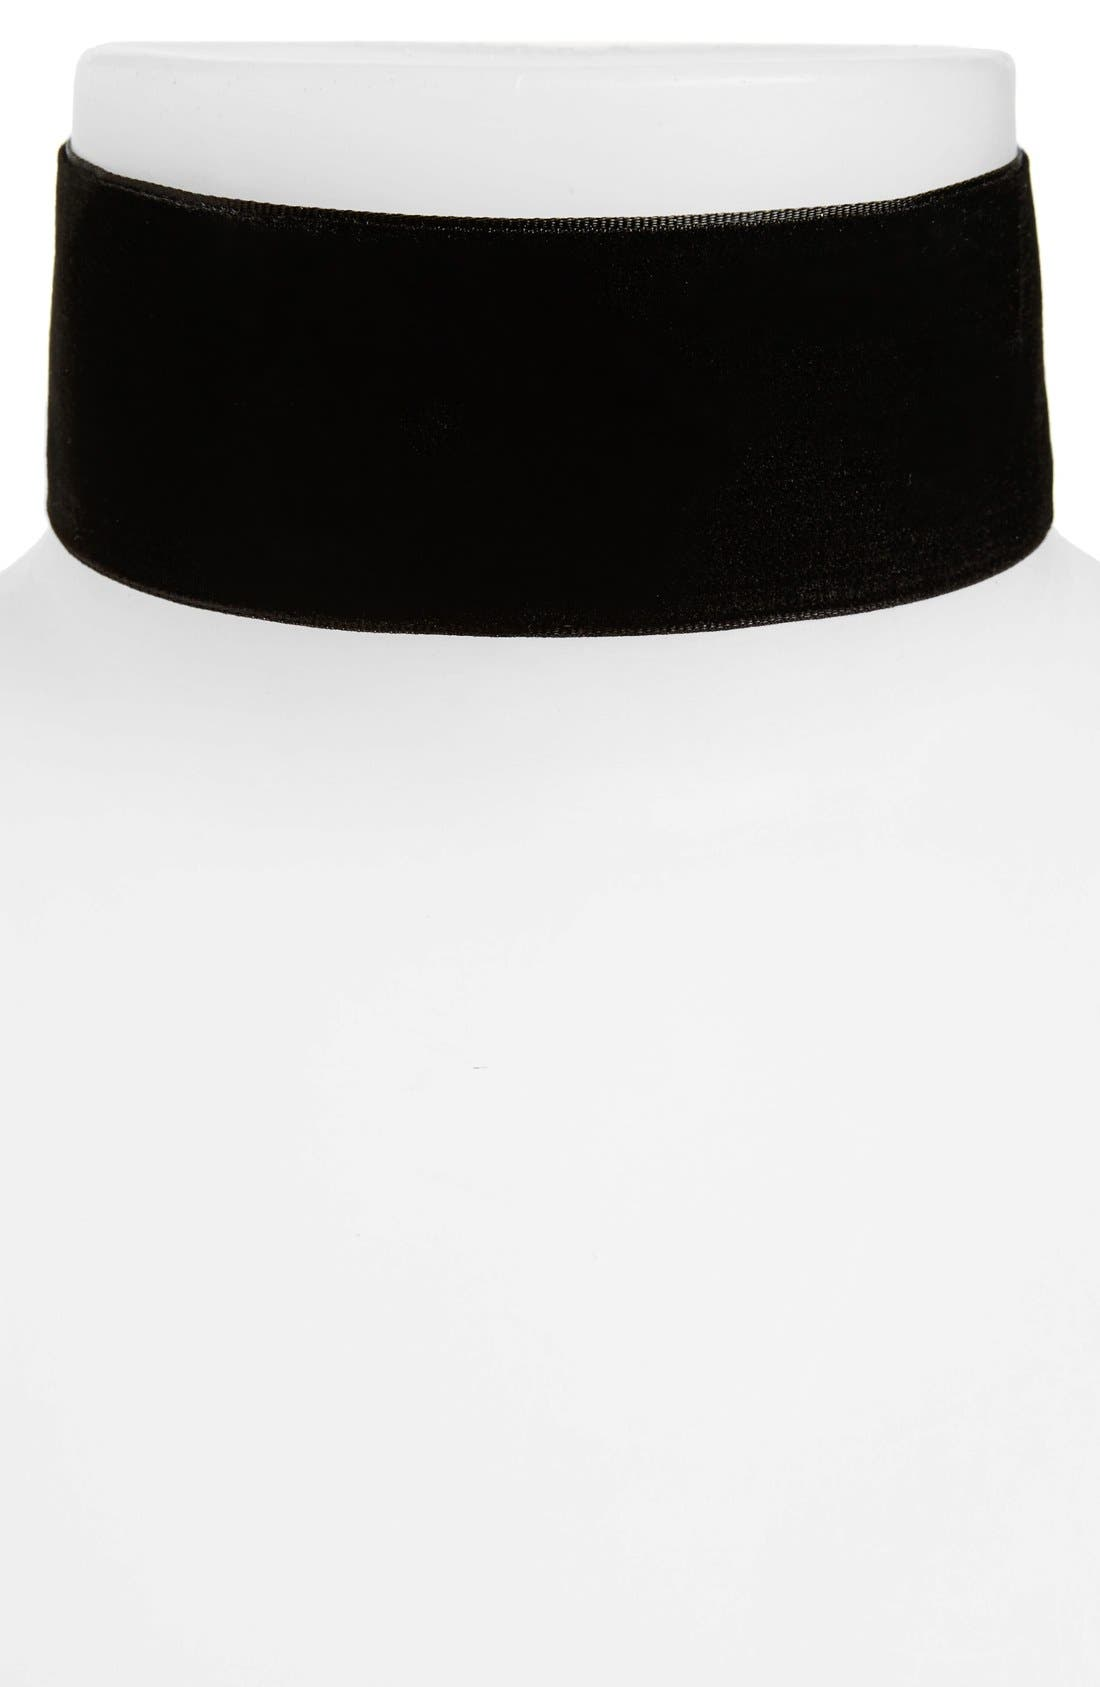 TOPSHOP, 'Thick and Thin' Velvet Chokers, Alternate thumbnail 2, color, 001